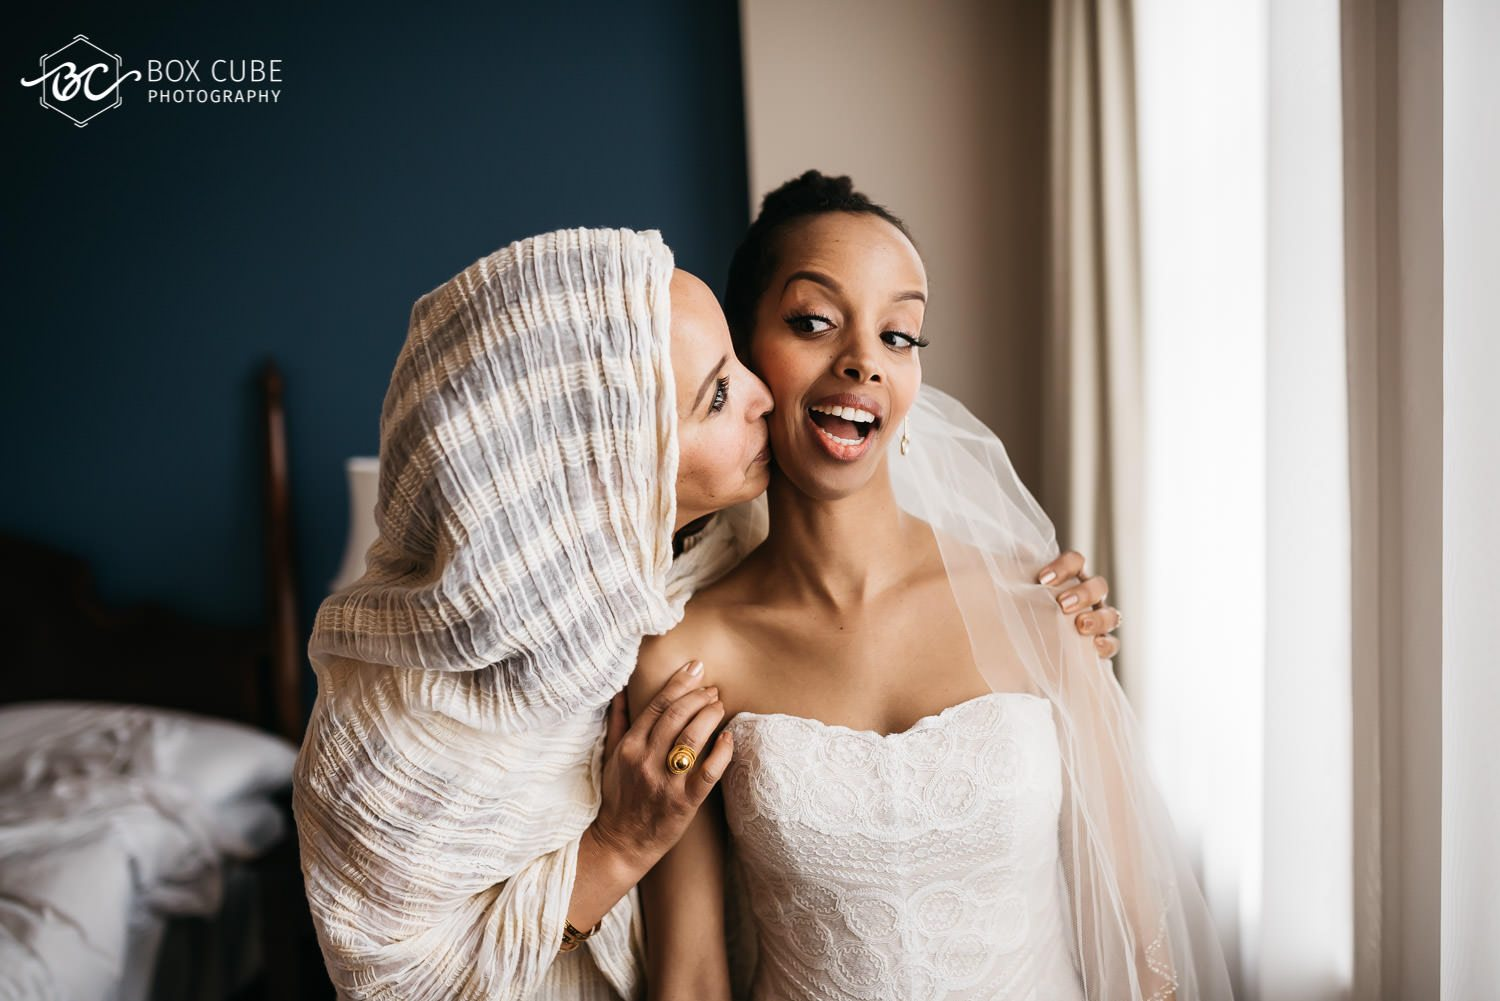 Bride Getting Ready for her wedding at Hotel Fairmont Macdonald